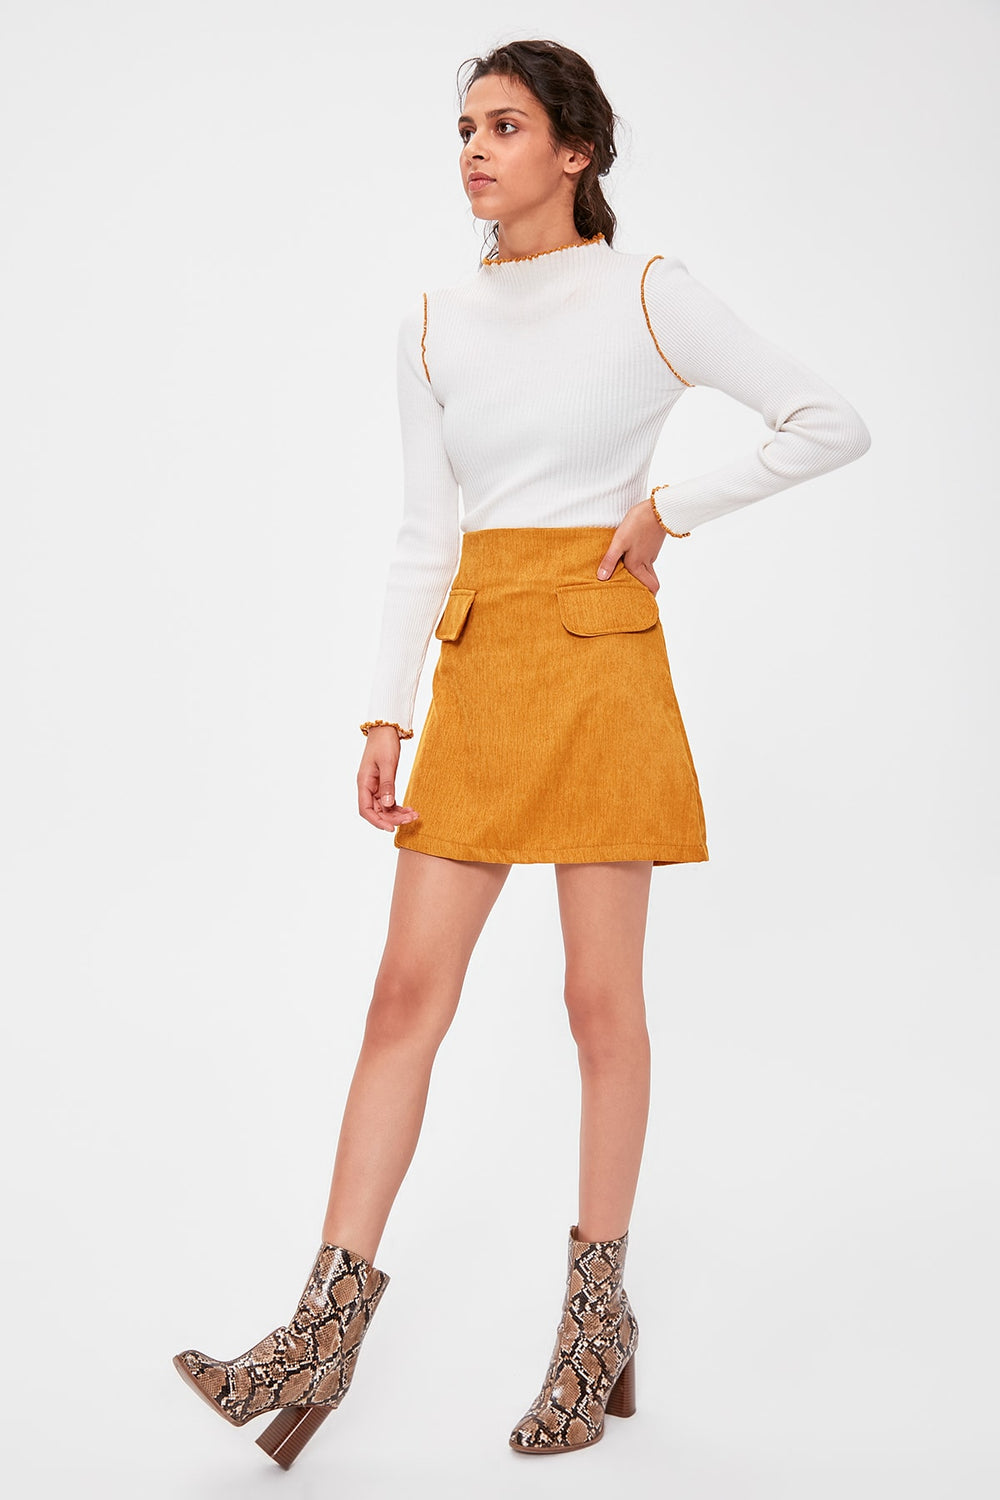 Miss Zut Miss Zut Mustard Pocket Detail Skirt Miss Zut &CO